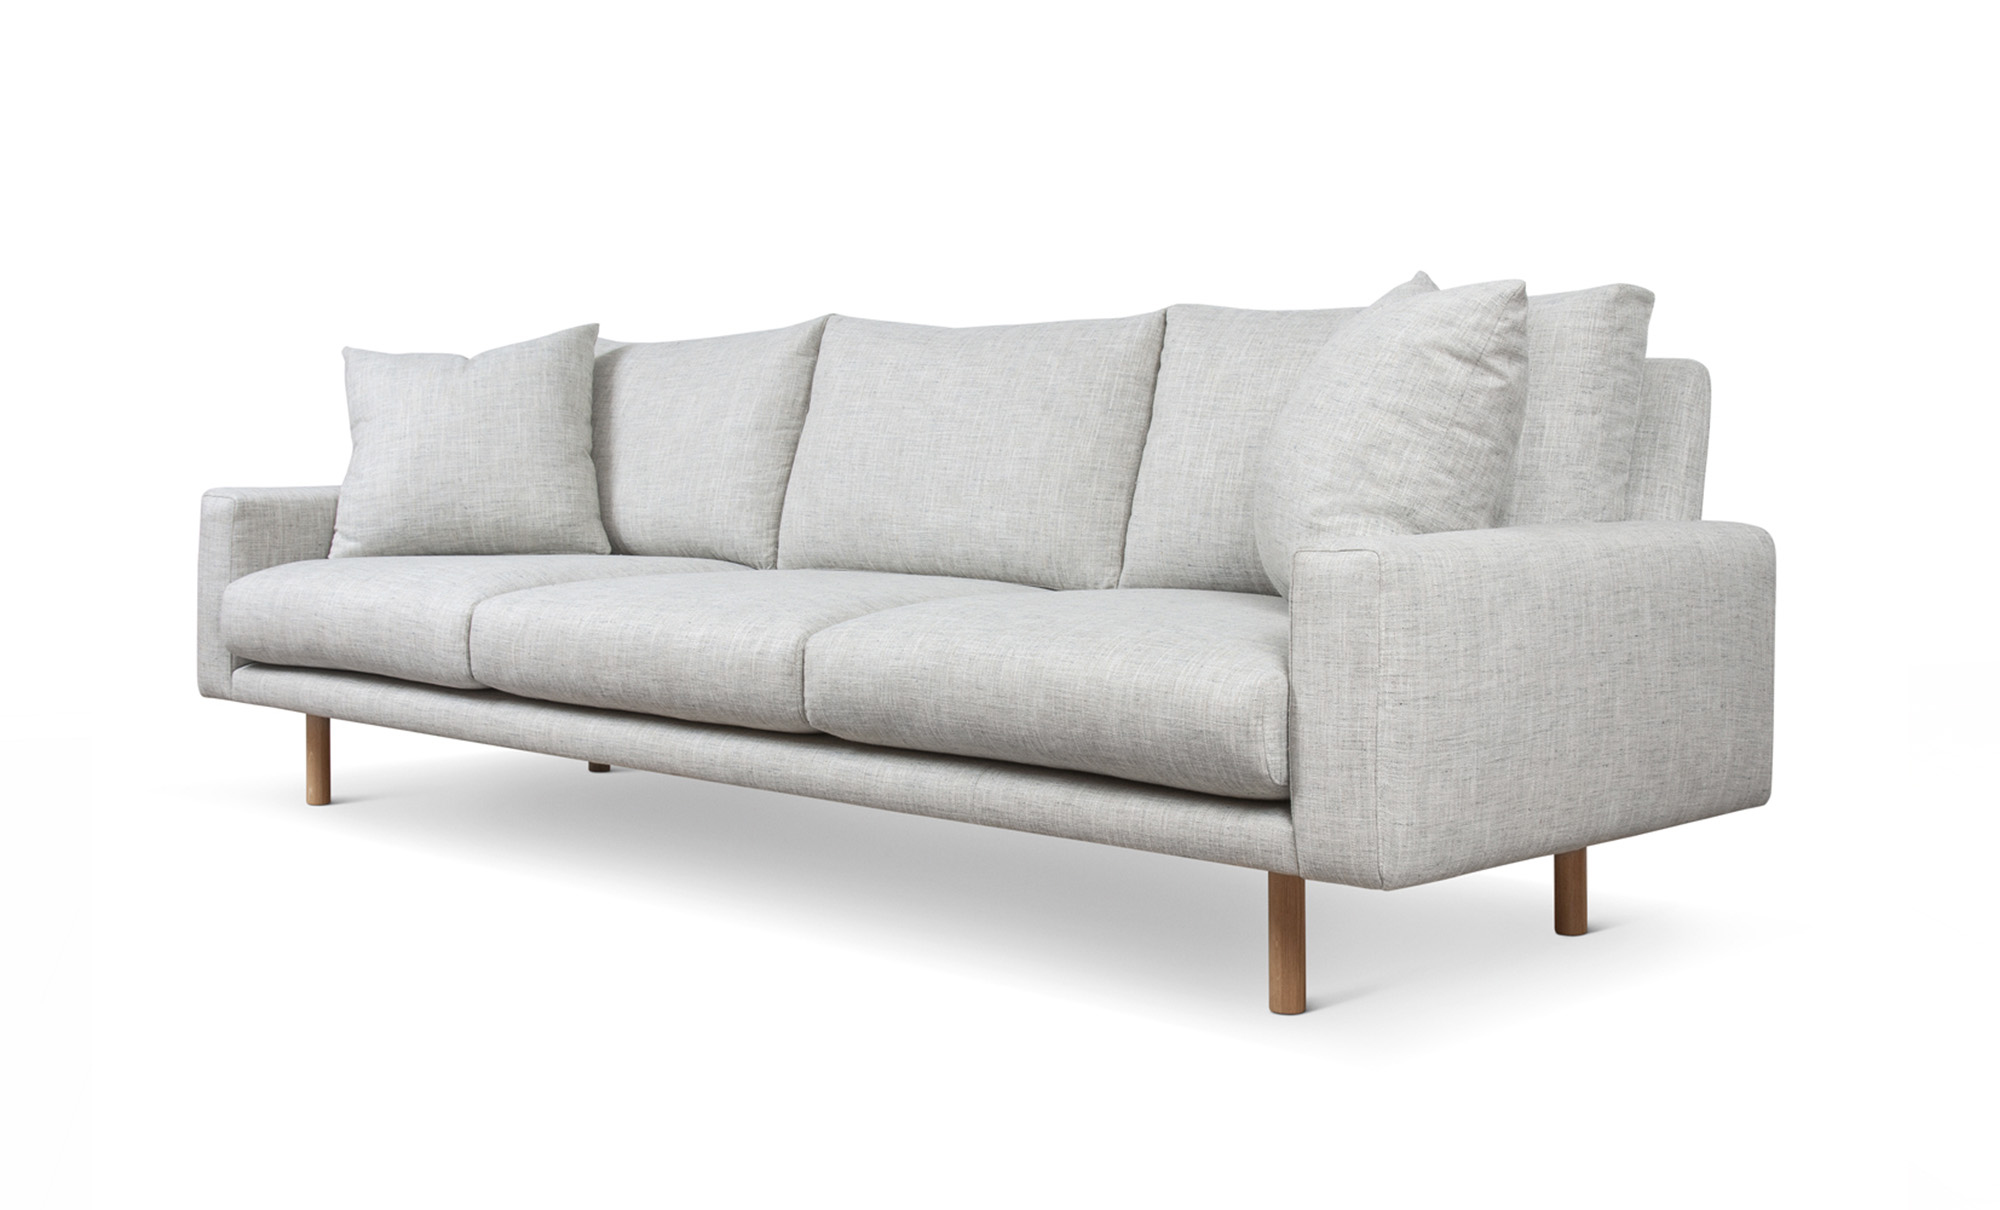 sofa clearance sydney wooden sofas designs pictures nelle fanuli furniture